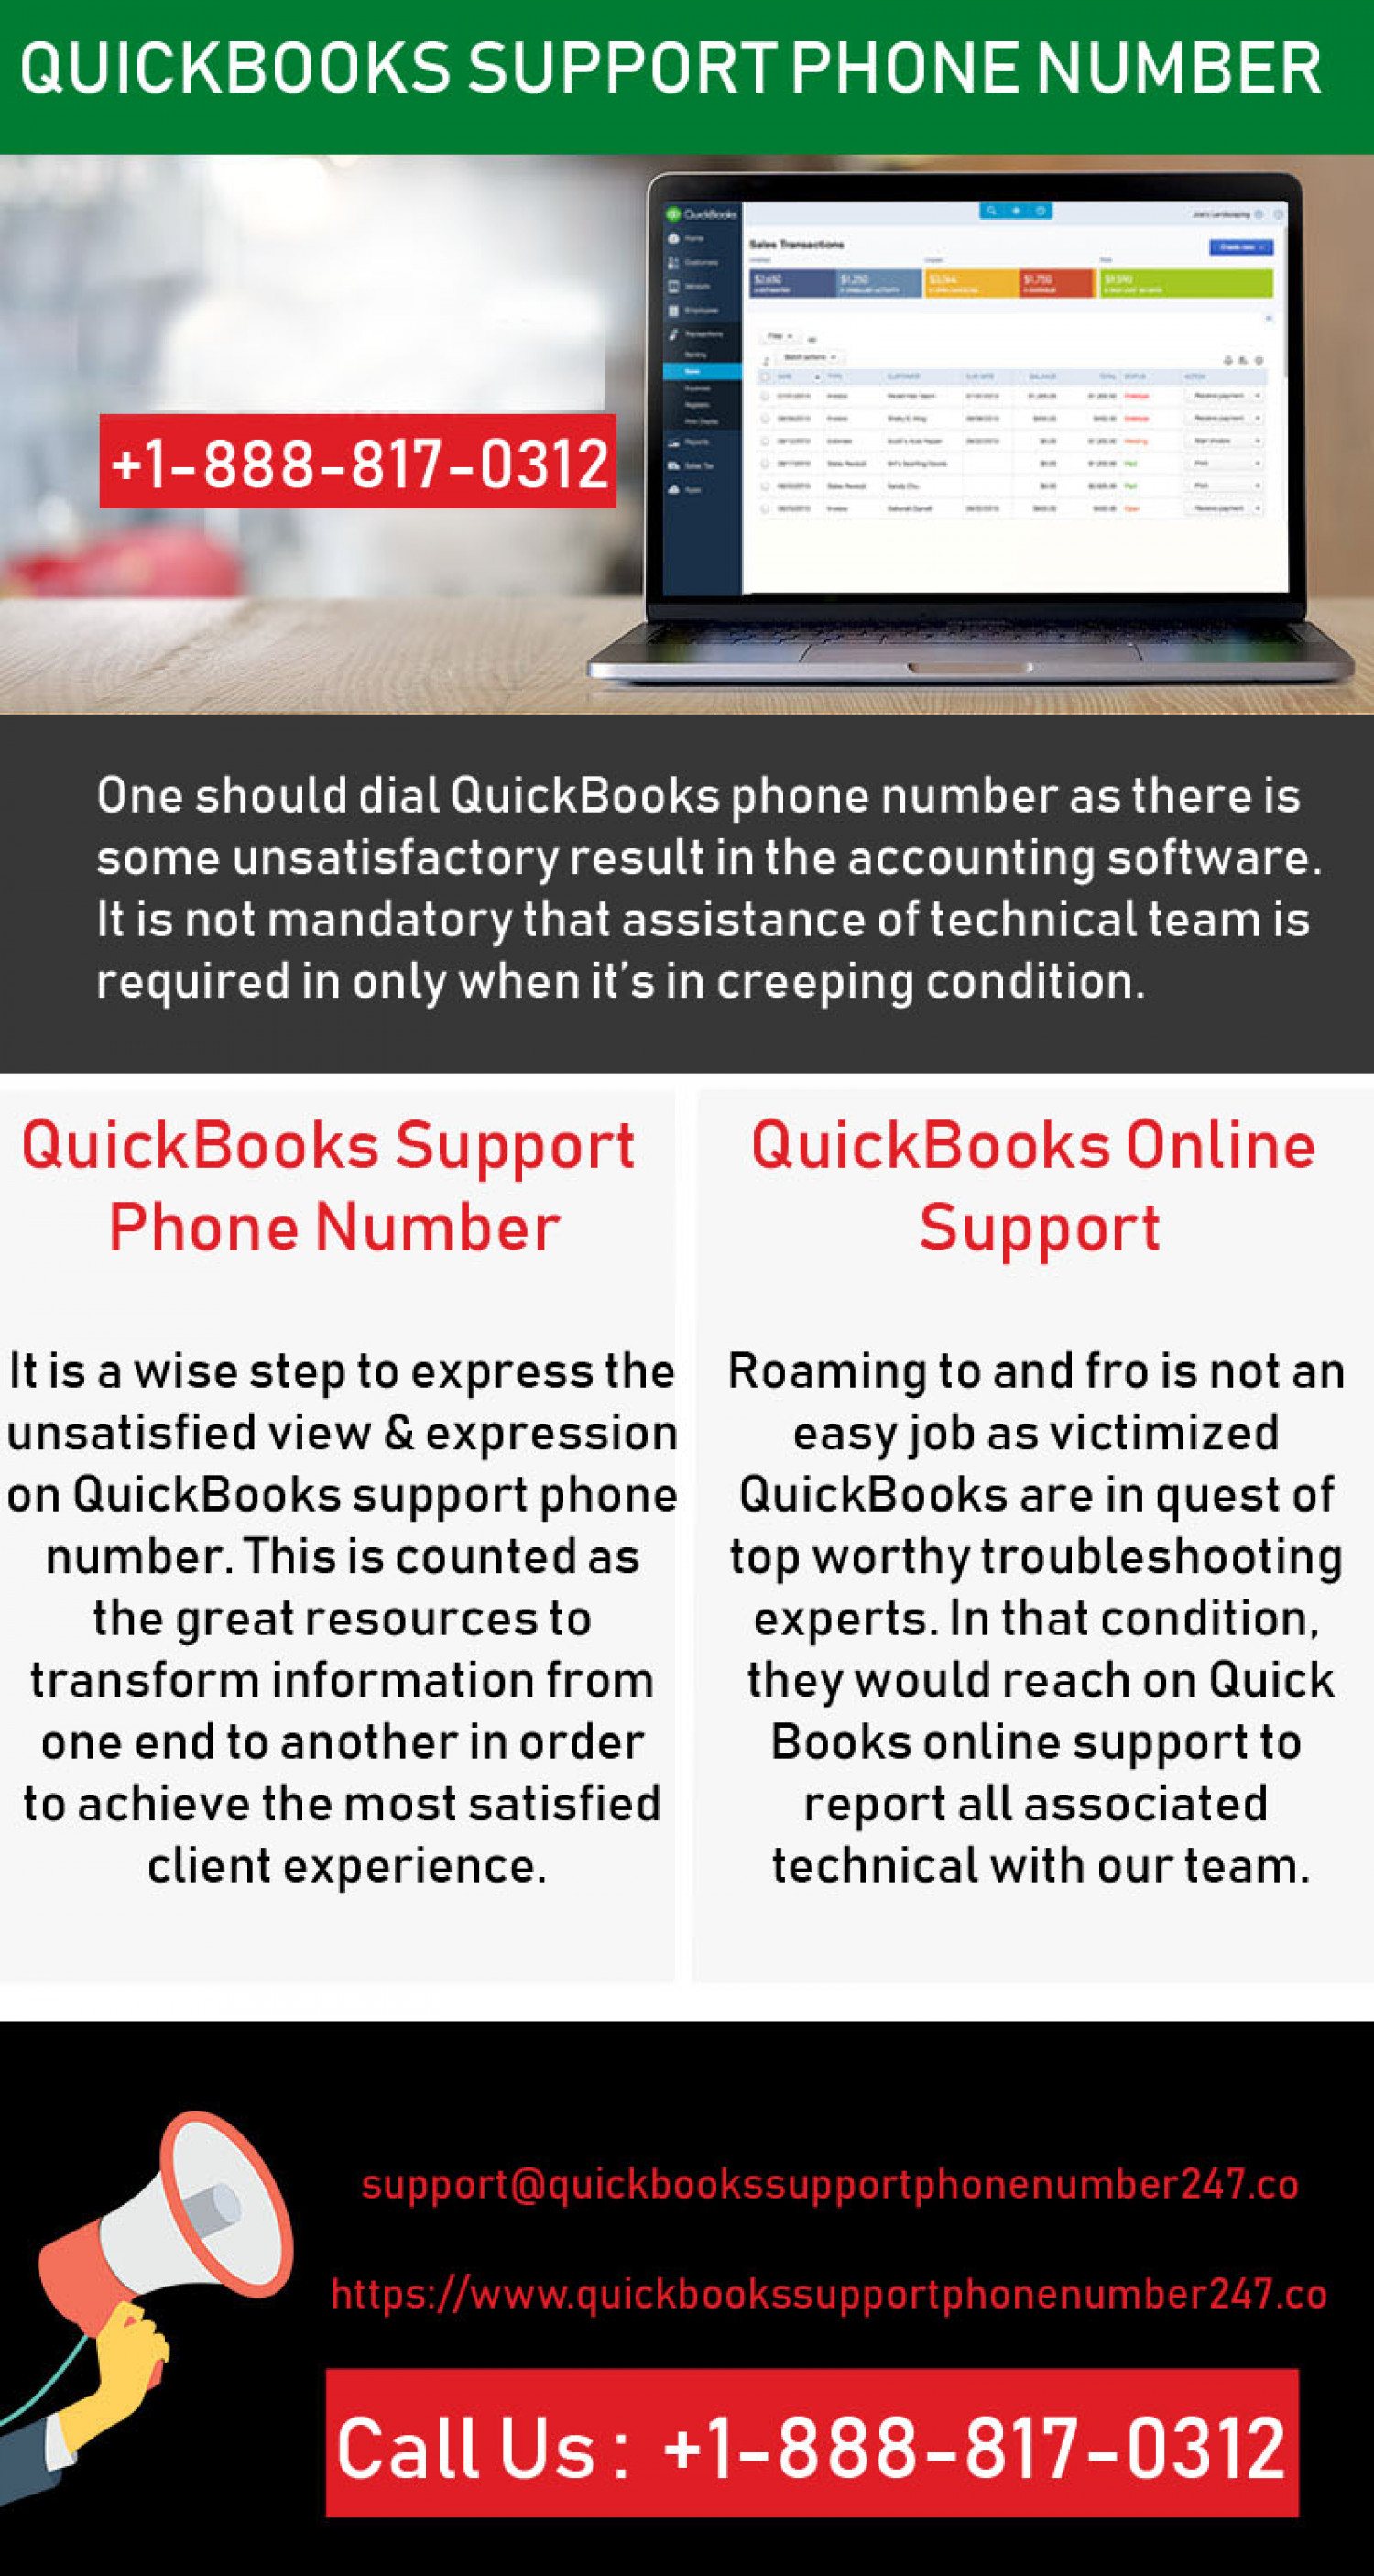 QuickBooks Support Phone Number Infographic